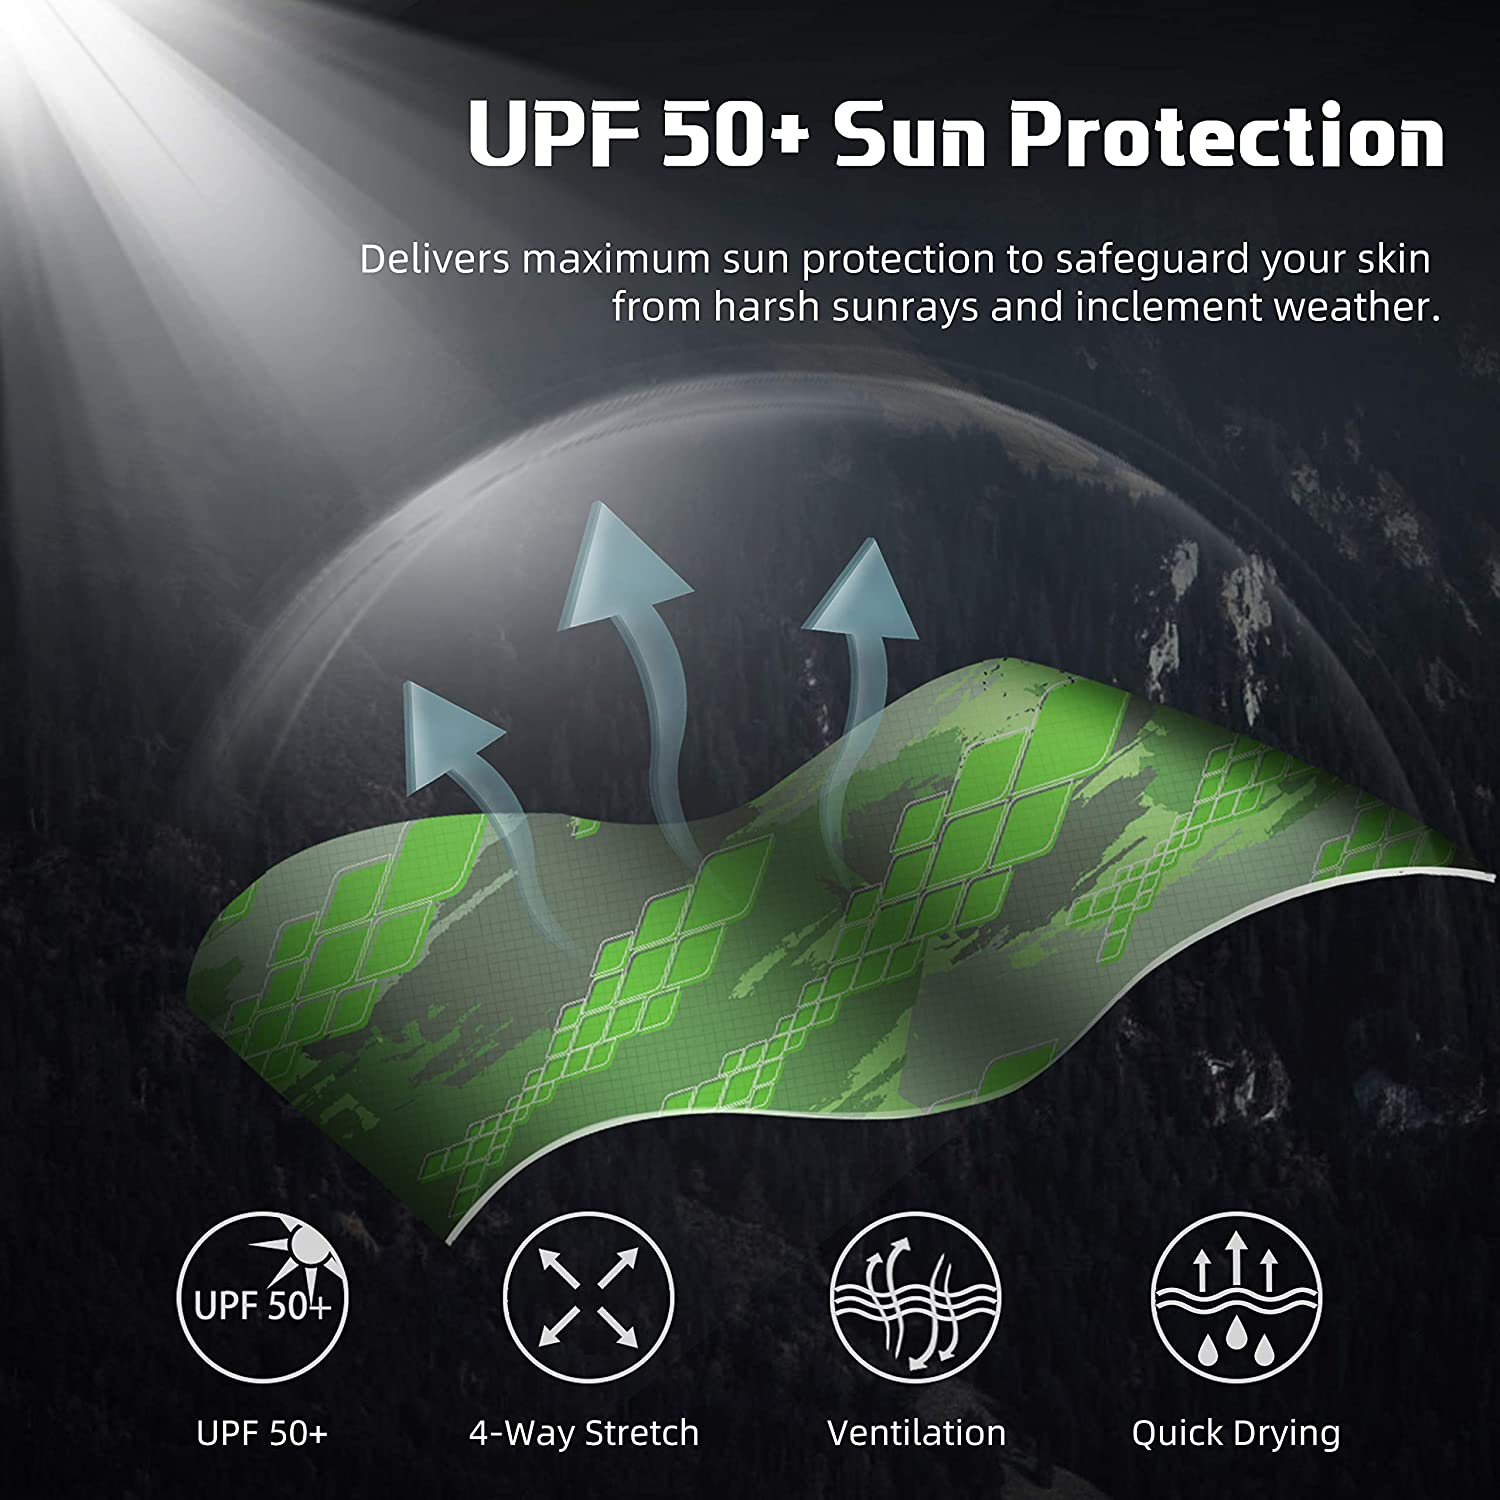 Half-Finger Style Mowing Kayaking UPF 50+ Sun Protection Fishing Gloves Cycling Sun Gloves Breathable Ventilation Rowing RUNCL Fingerless Gloves RAGUEL Gardening Microfiber-Tech Safeguard